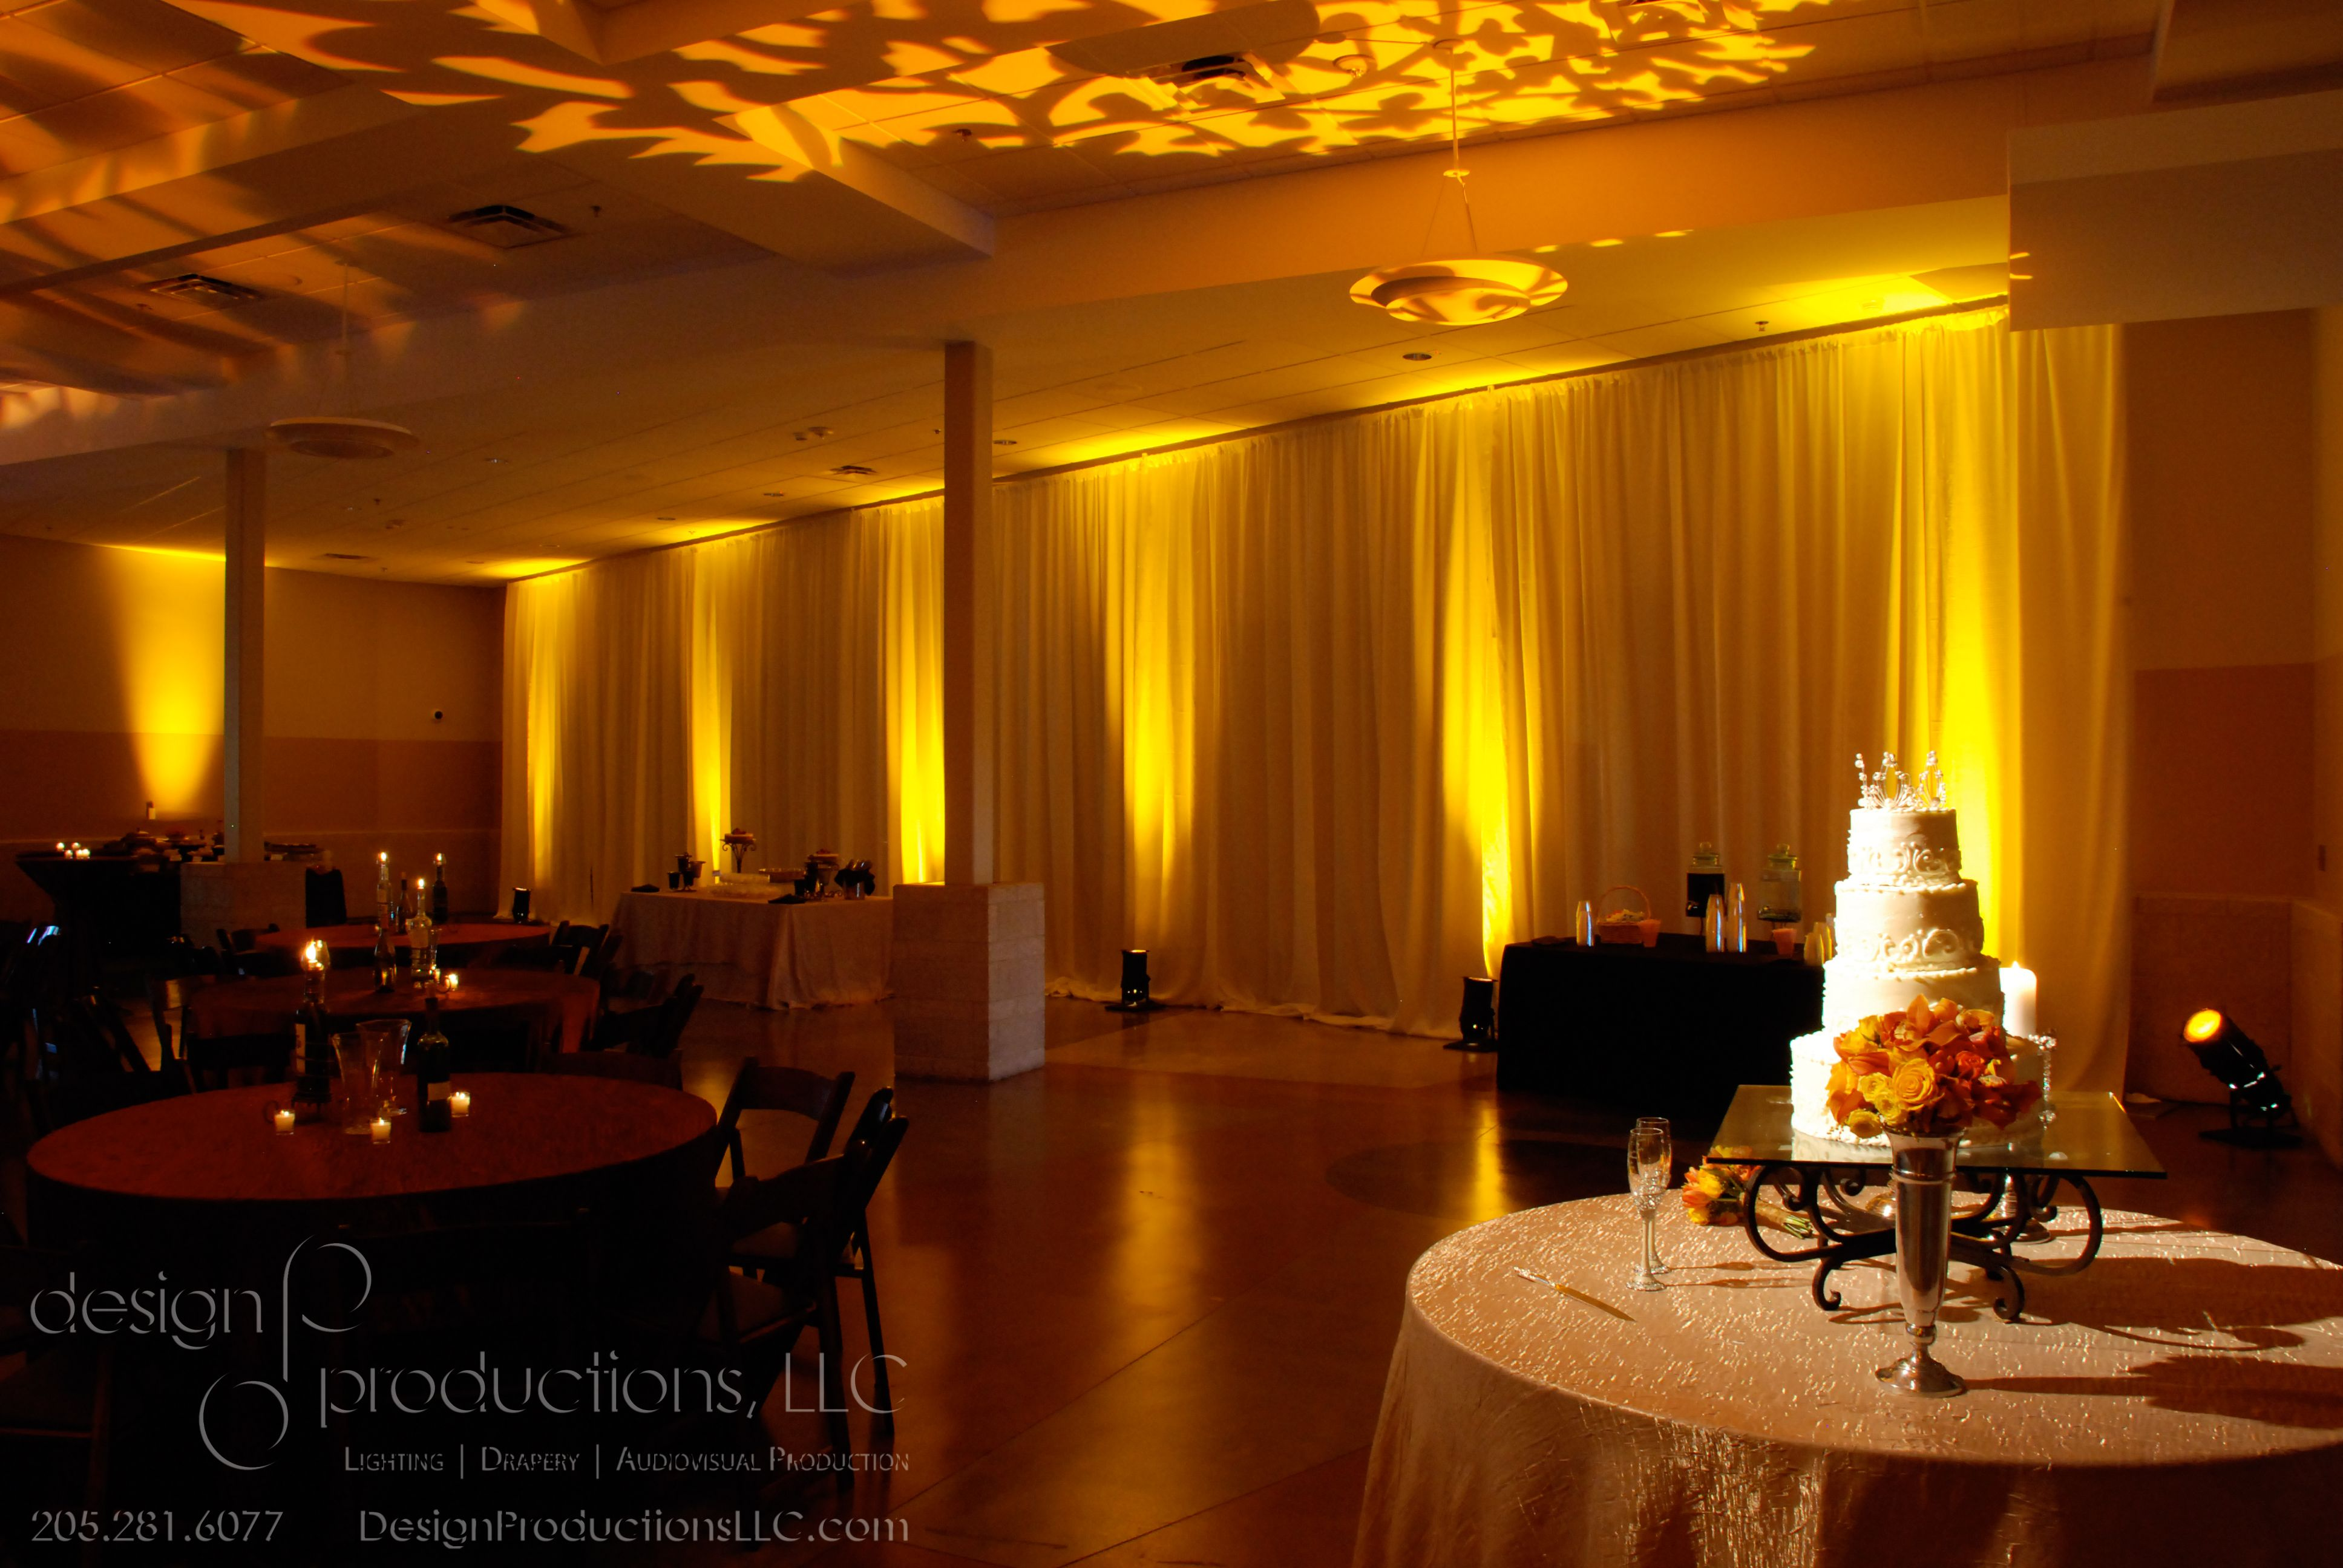 Lighting By Design Productions Draping With Amber Uplights And